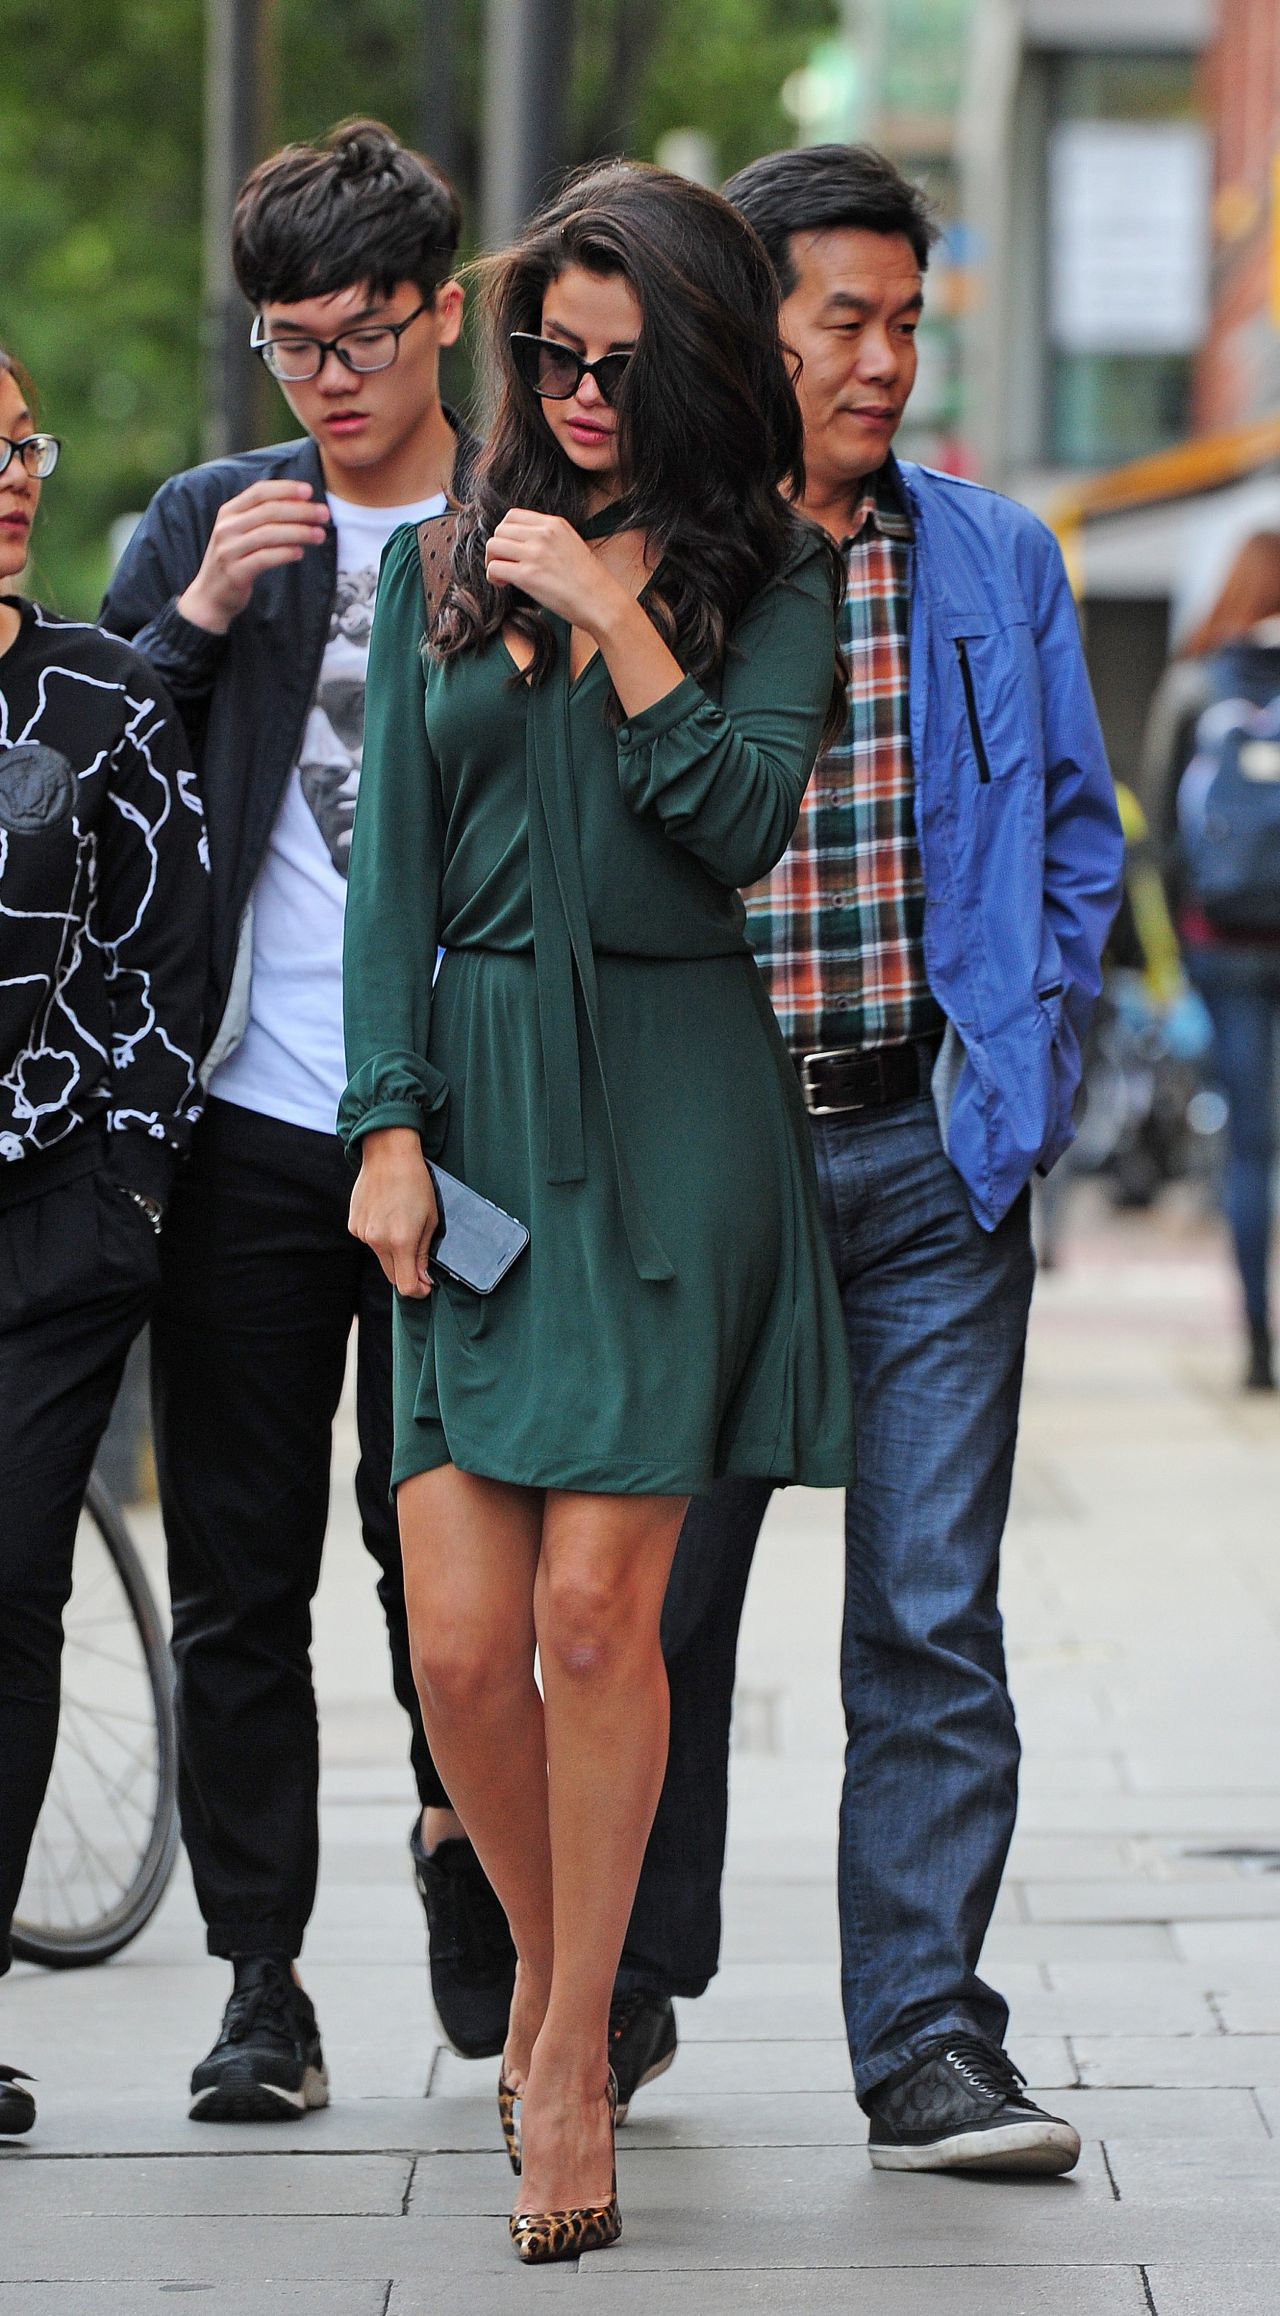 Selena Gomez In Green Dress Out In London September 2015